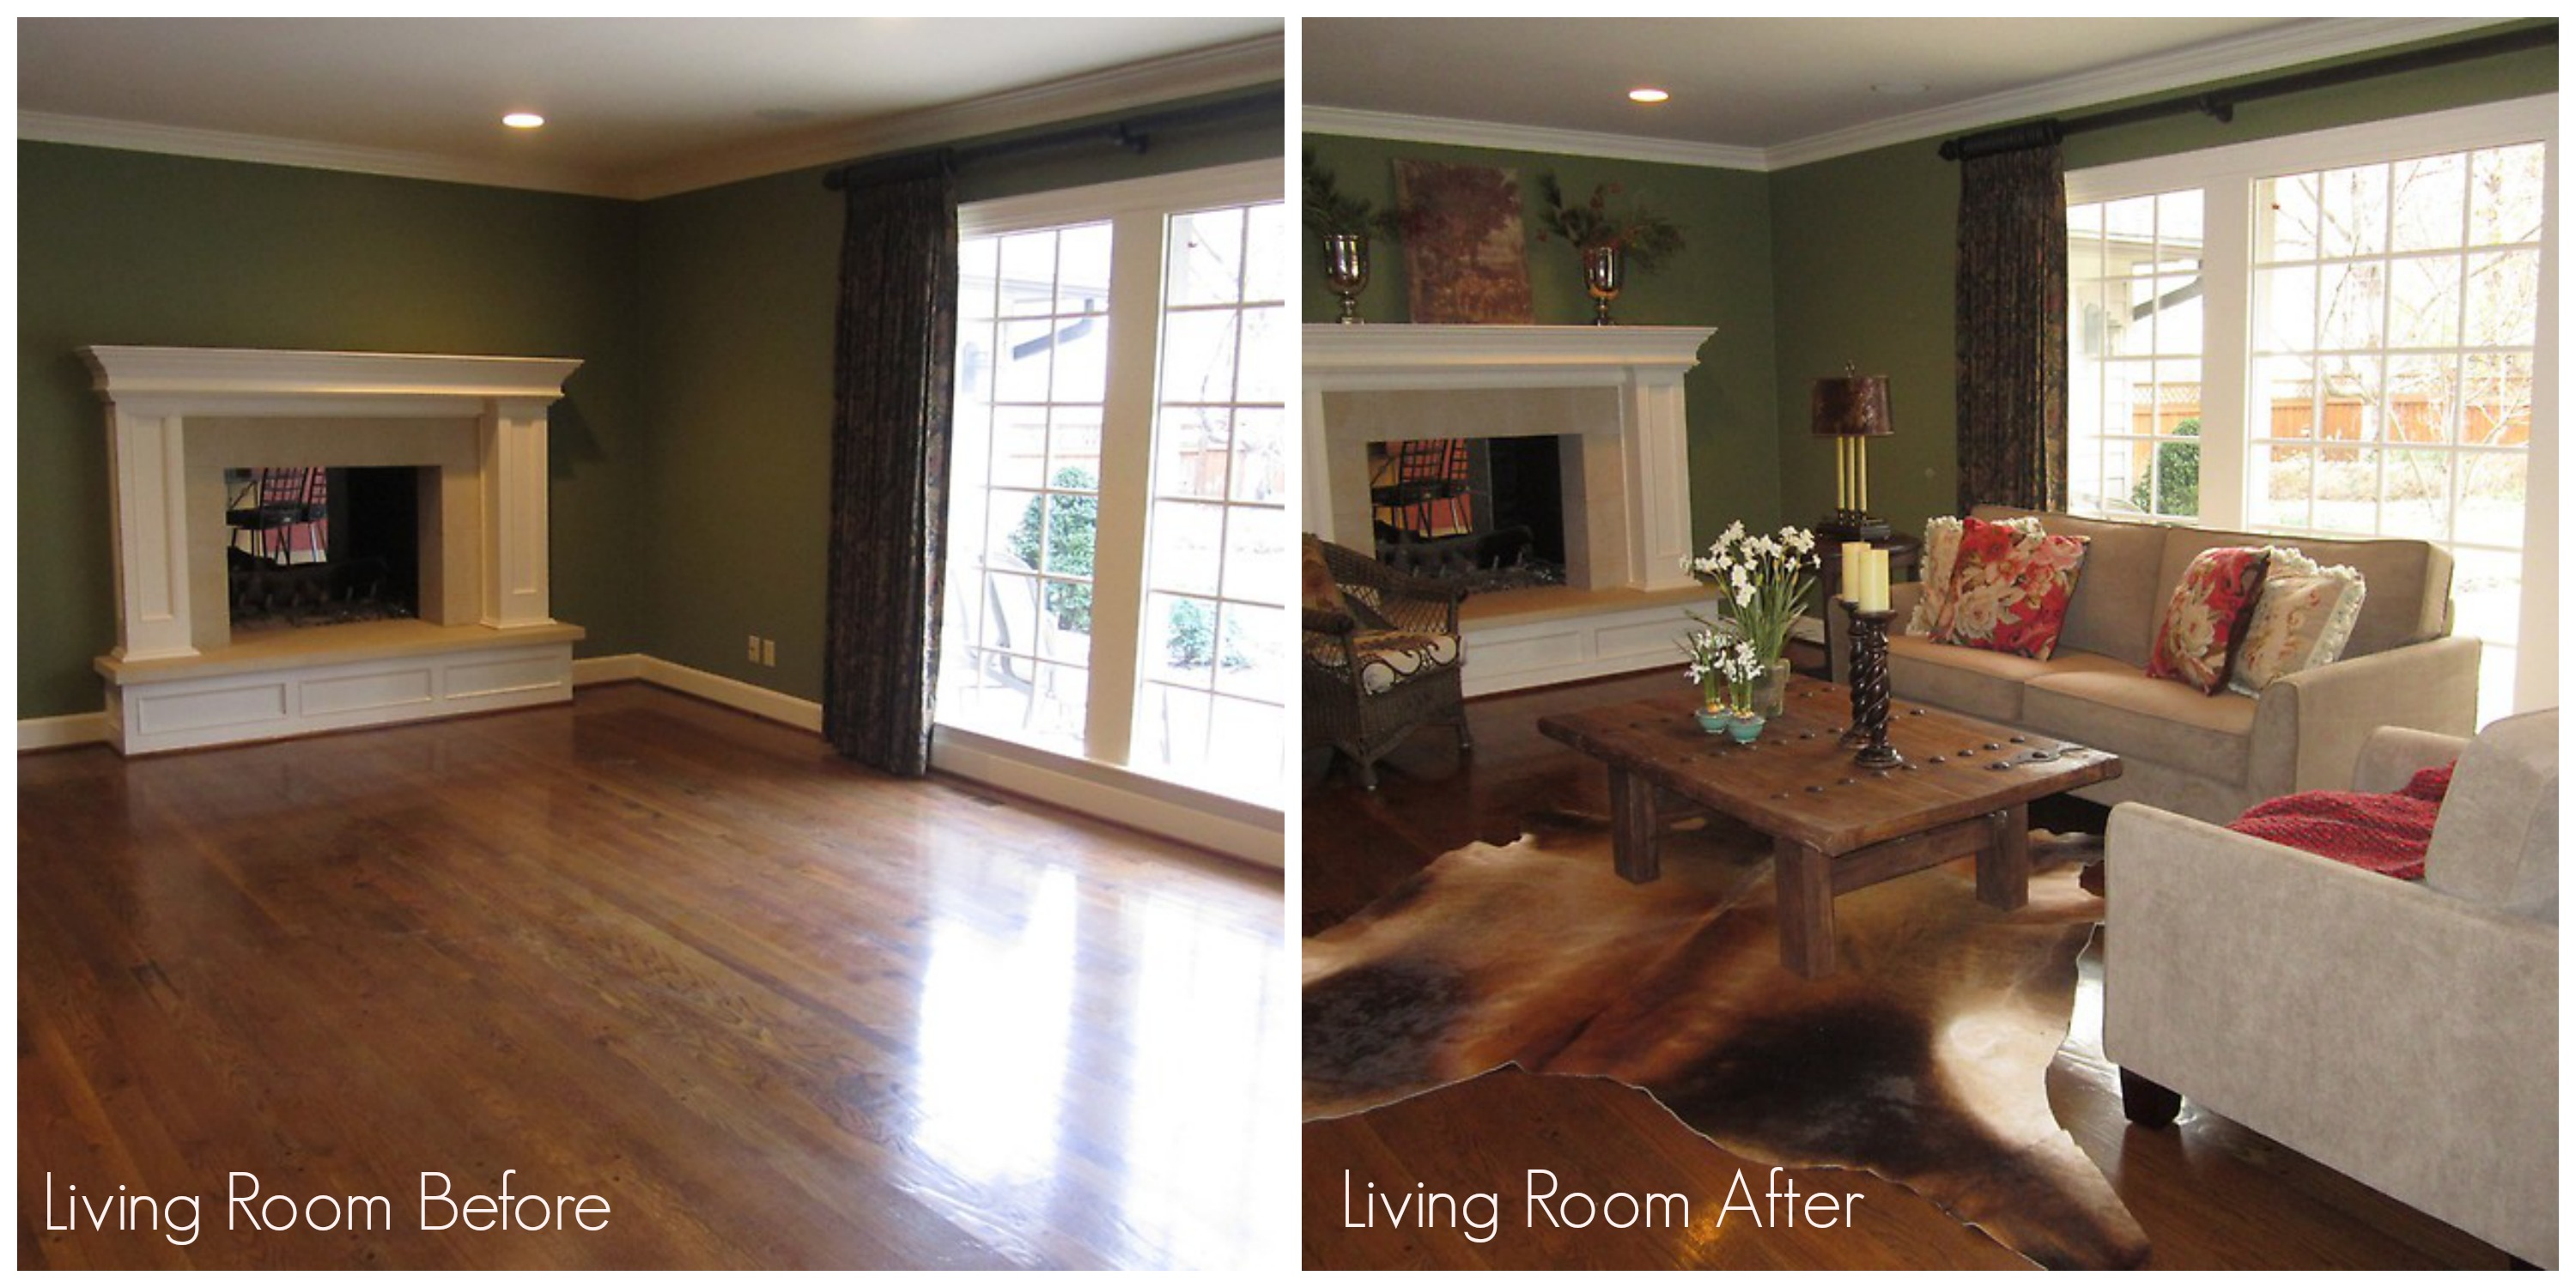 Living Room Before And After Staging